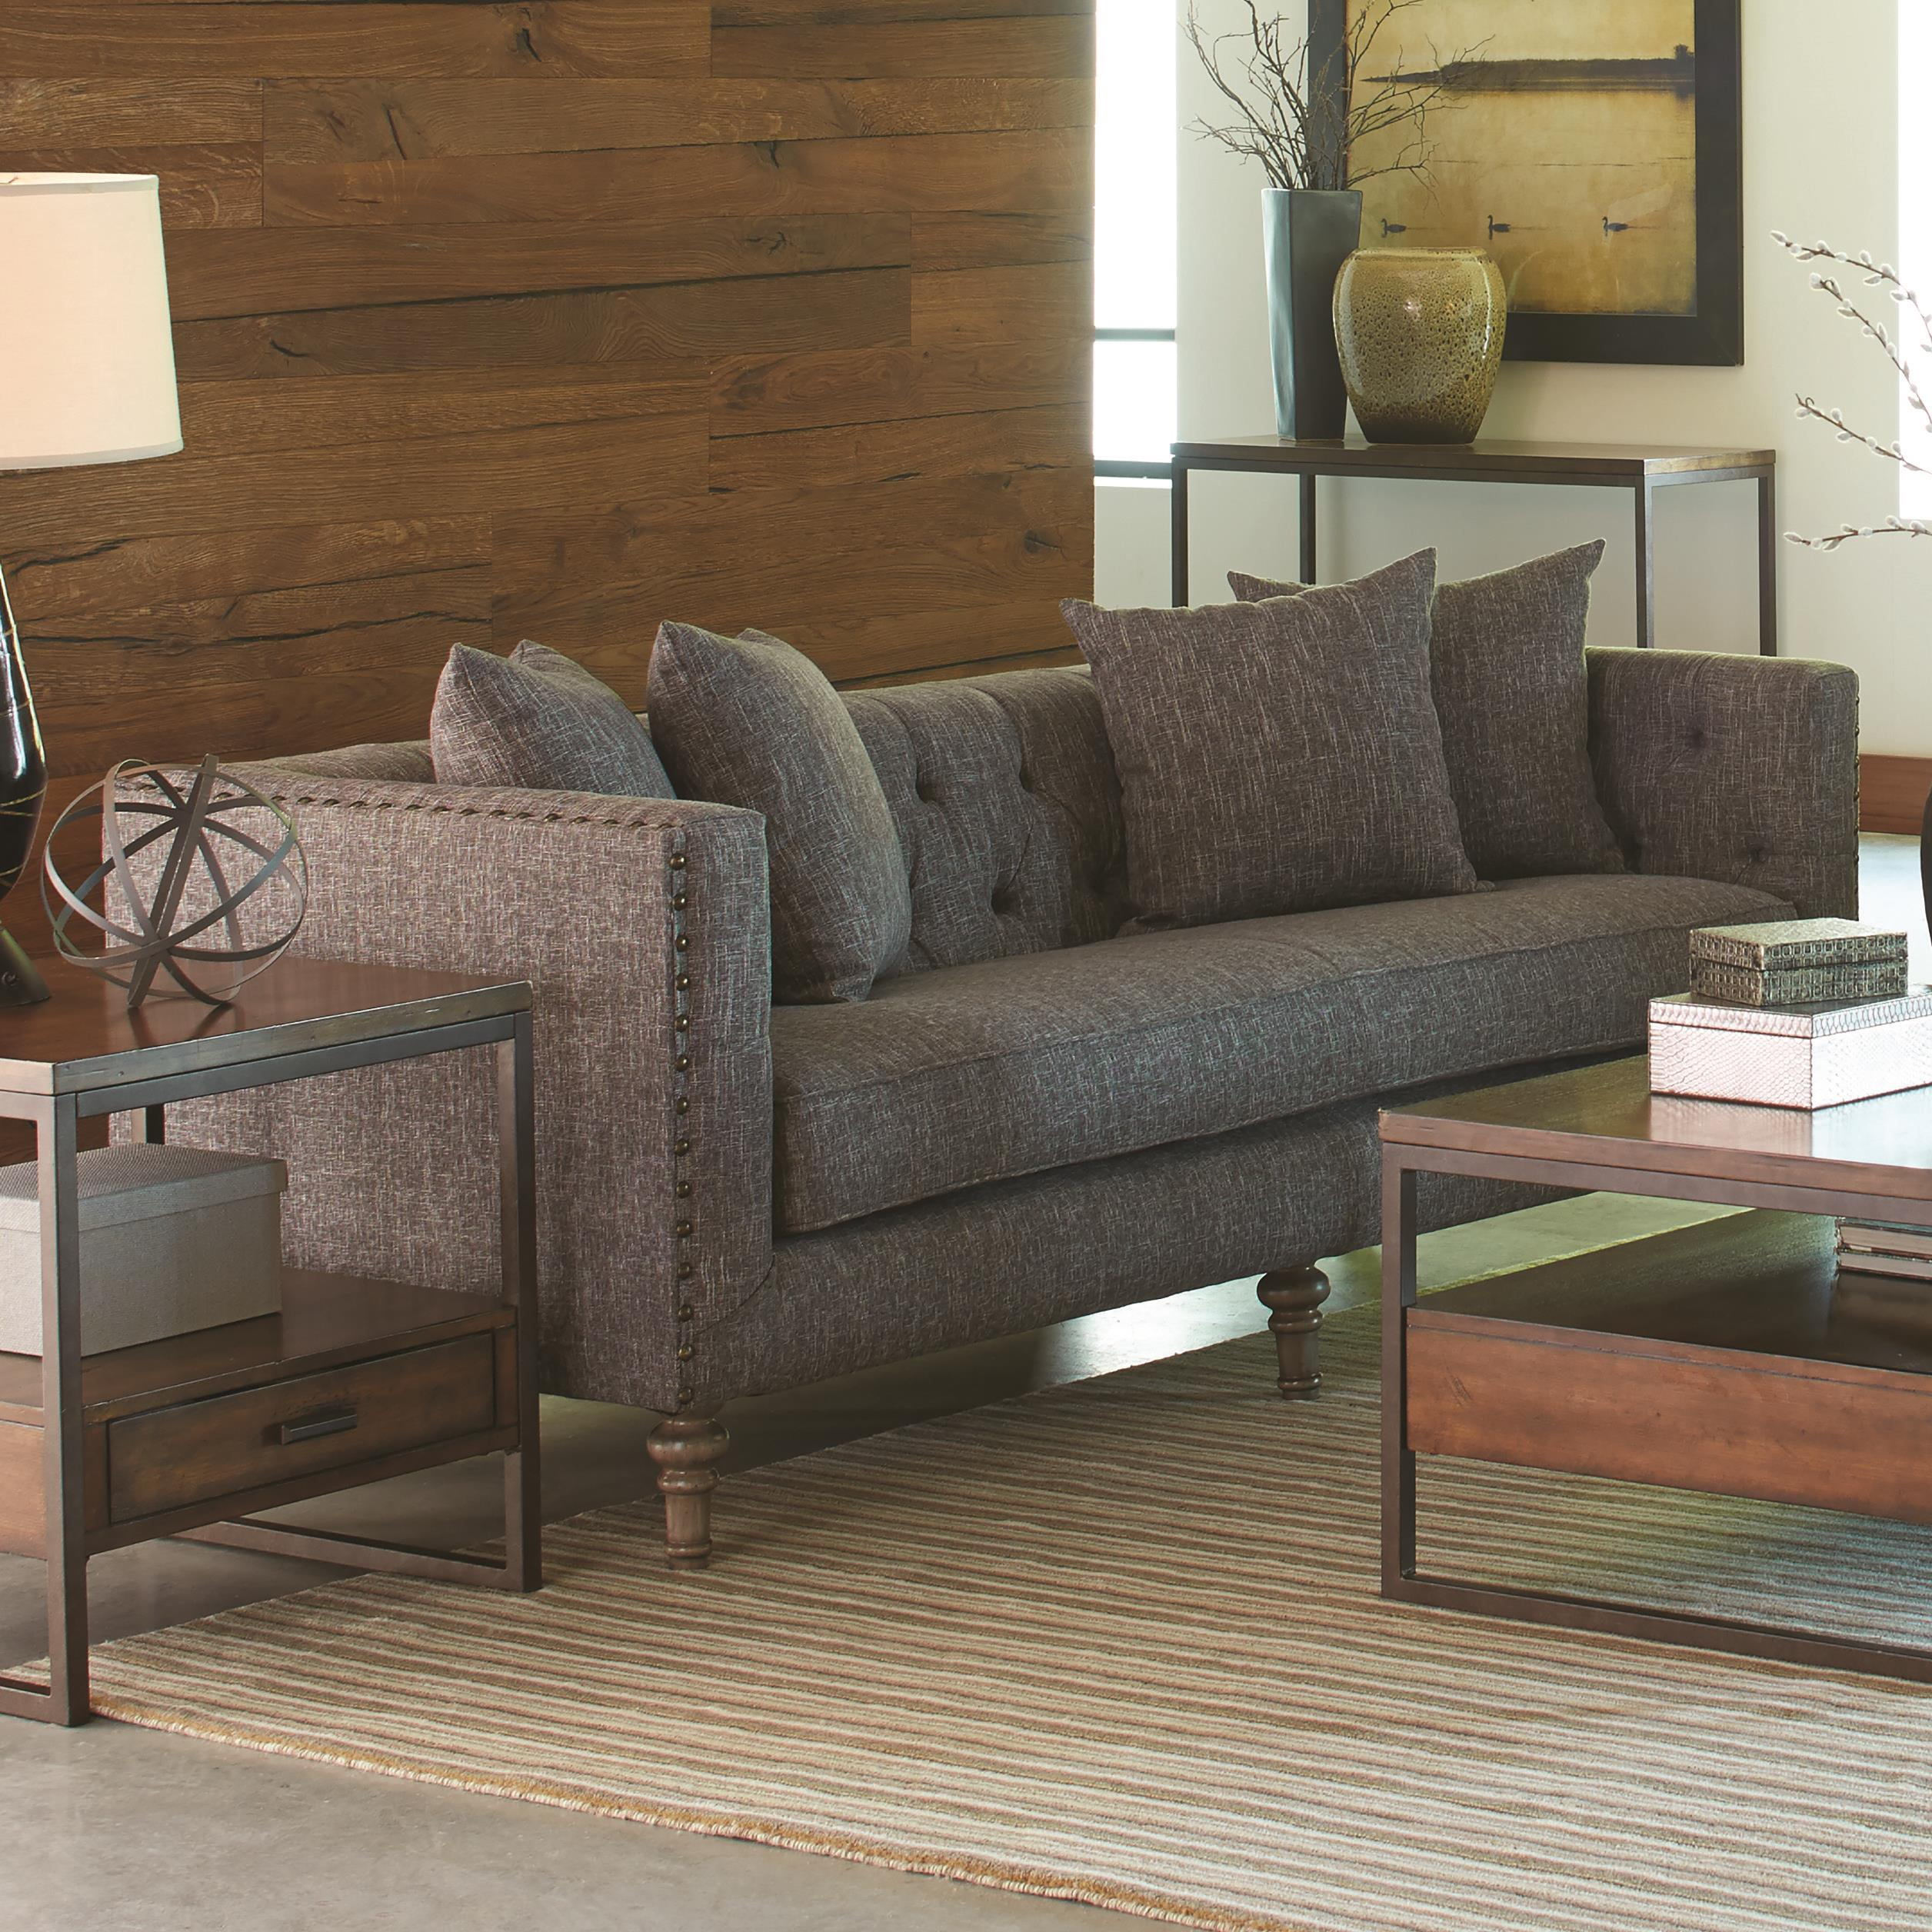 Coaster ellery 505771 sofa with traditional industrial for Industrial couch